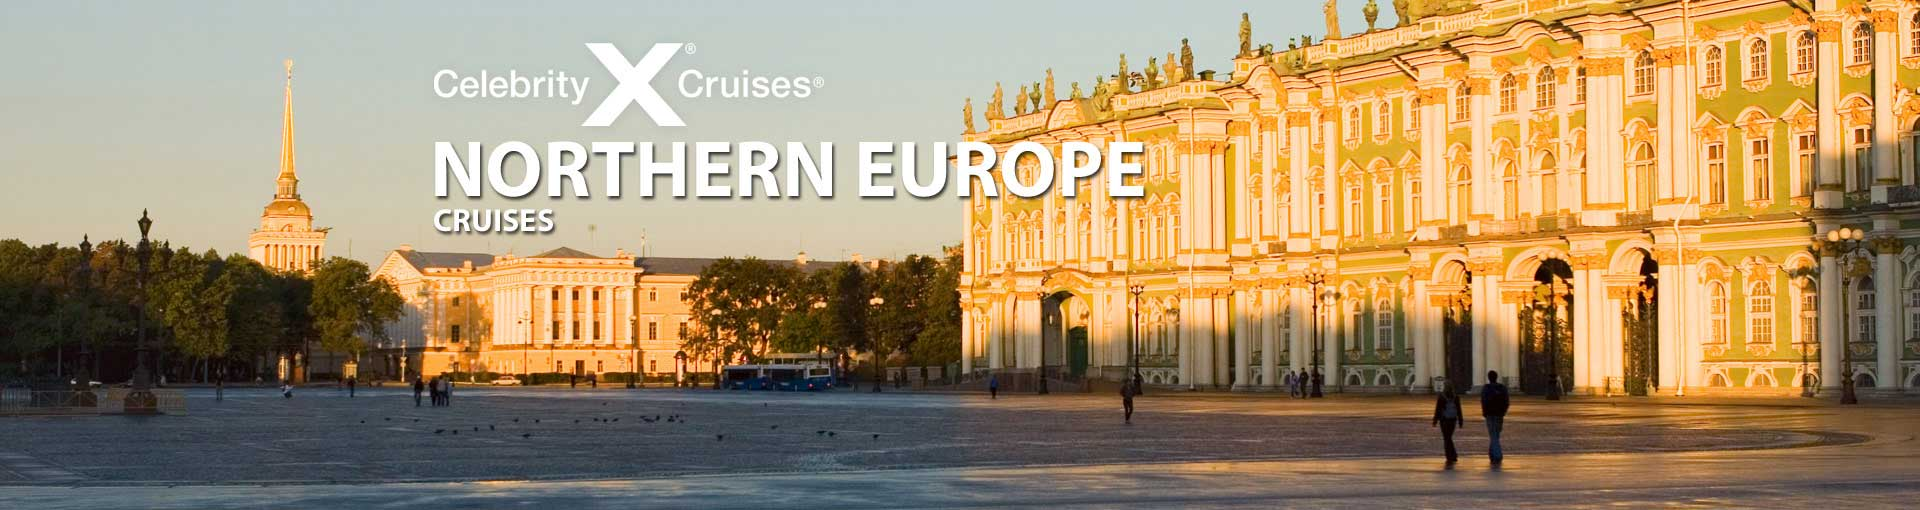 Celebrity Cruises Northern Europe Cruises